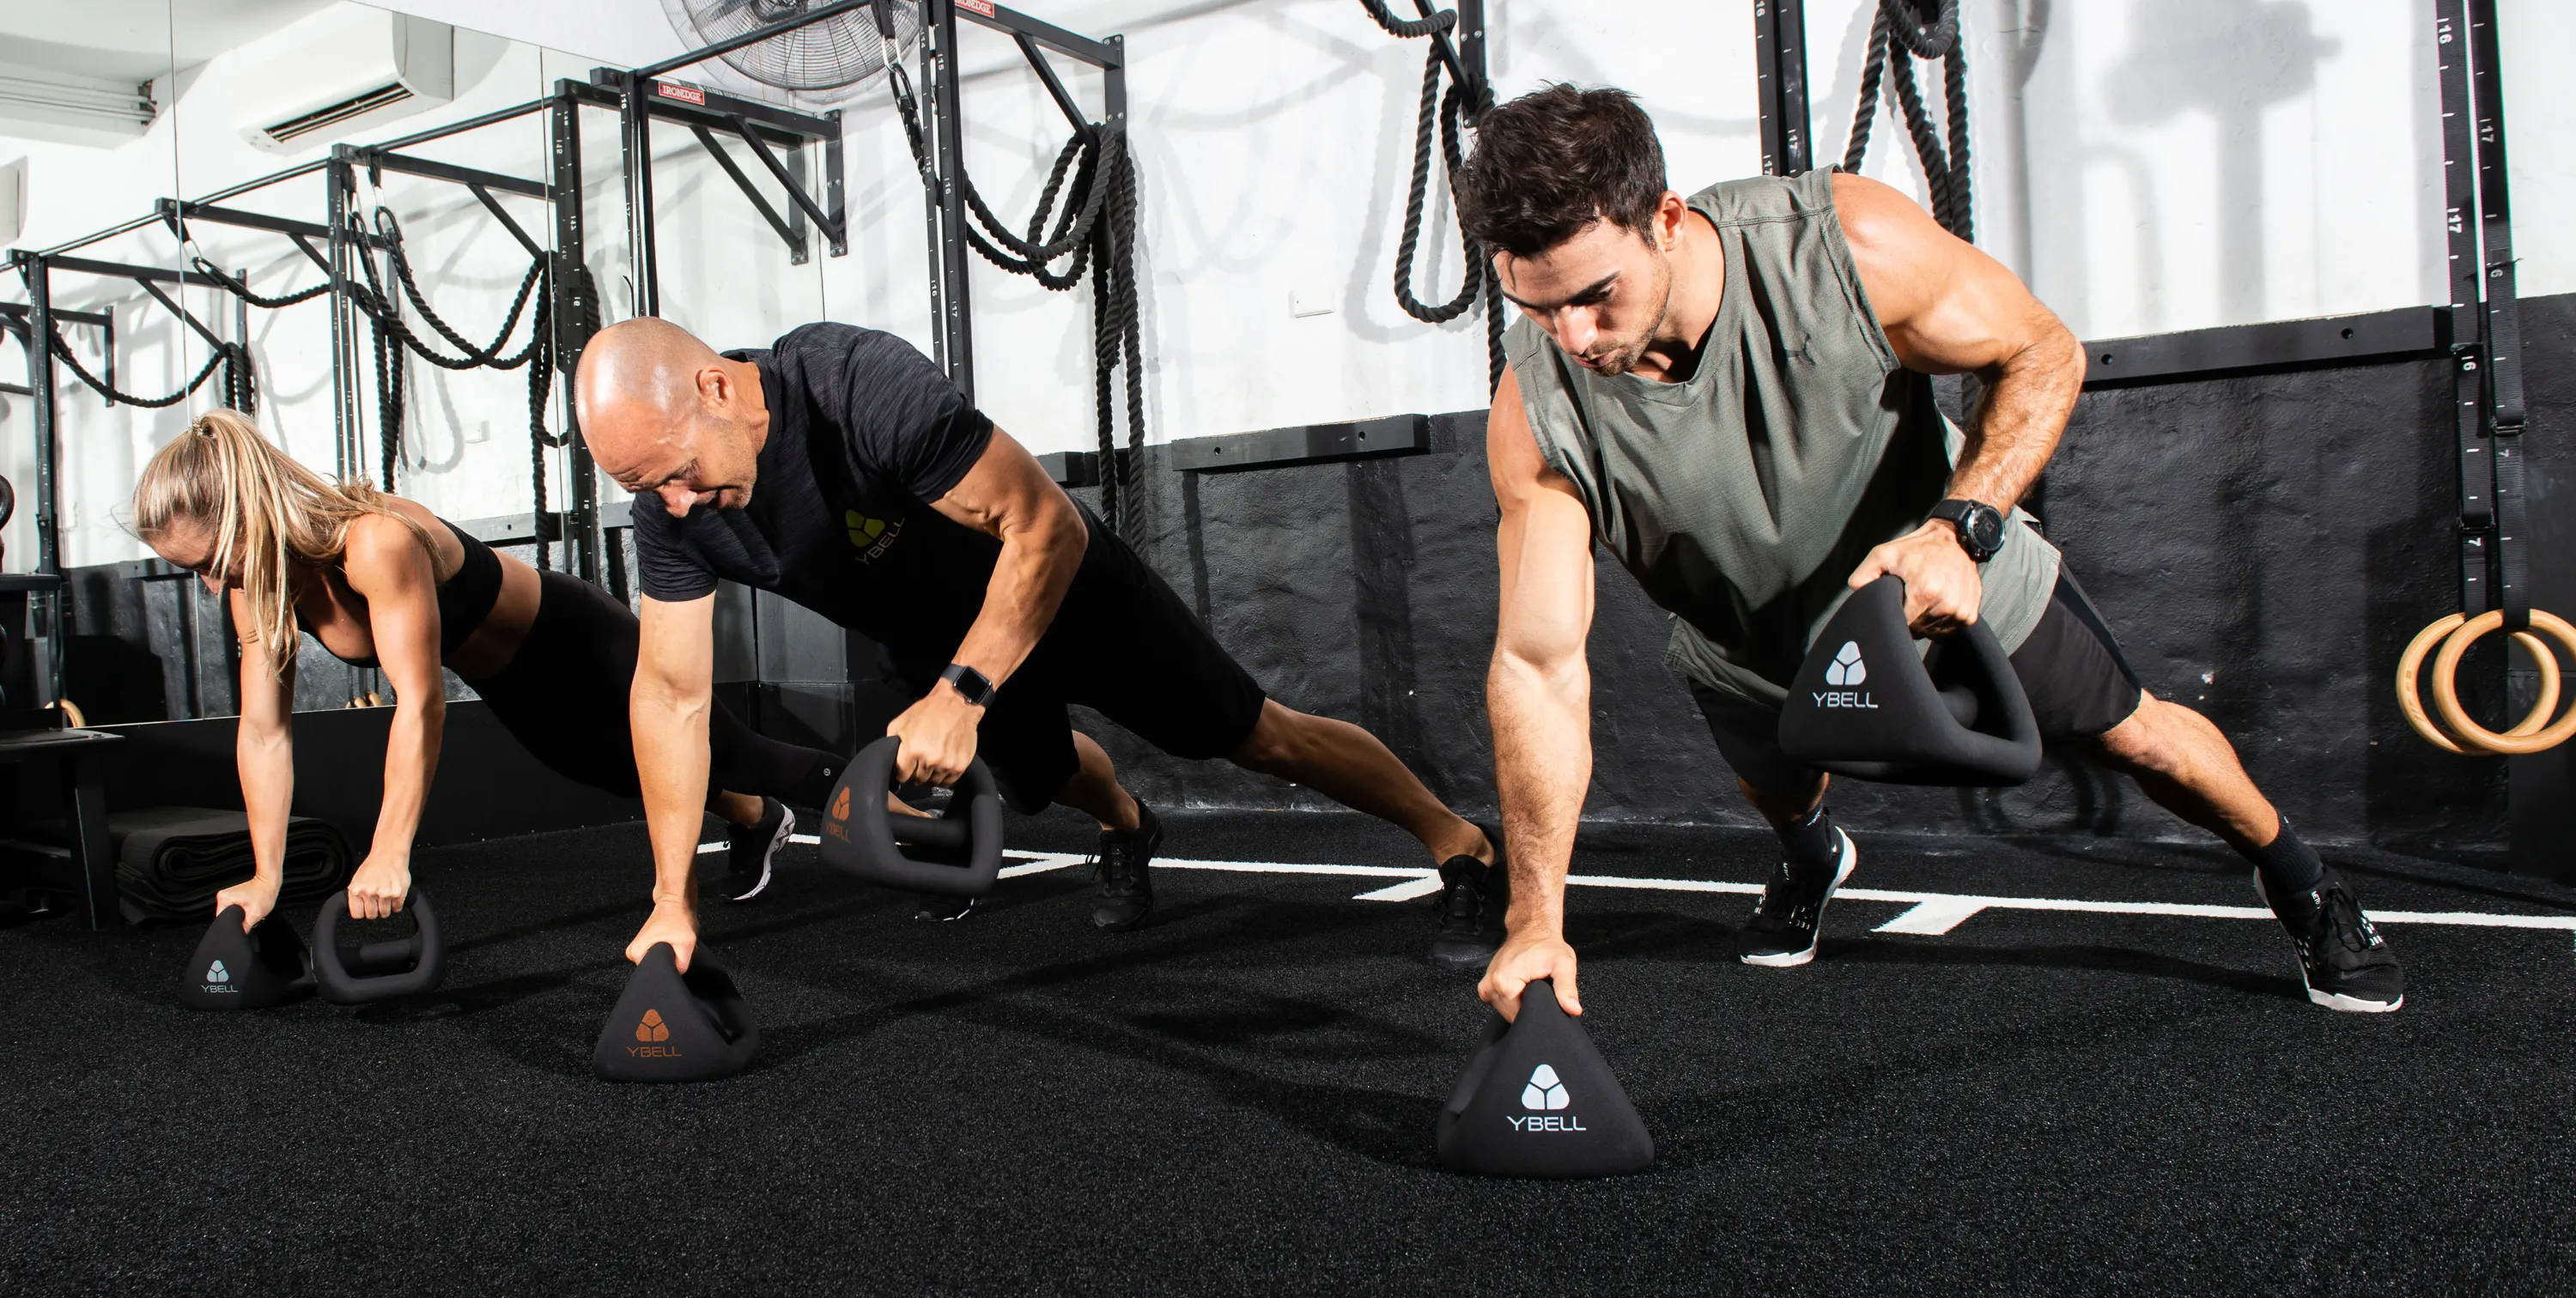 Athletes training with YBells as push-up stands in a gym